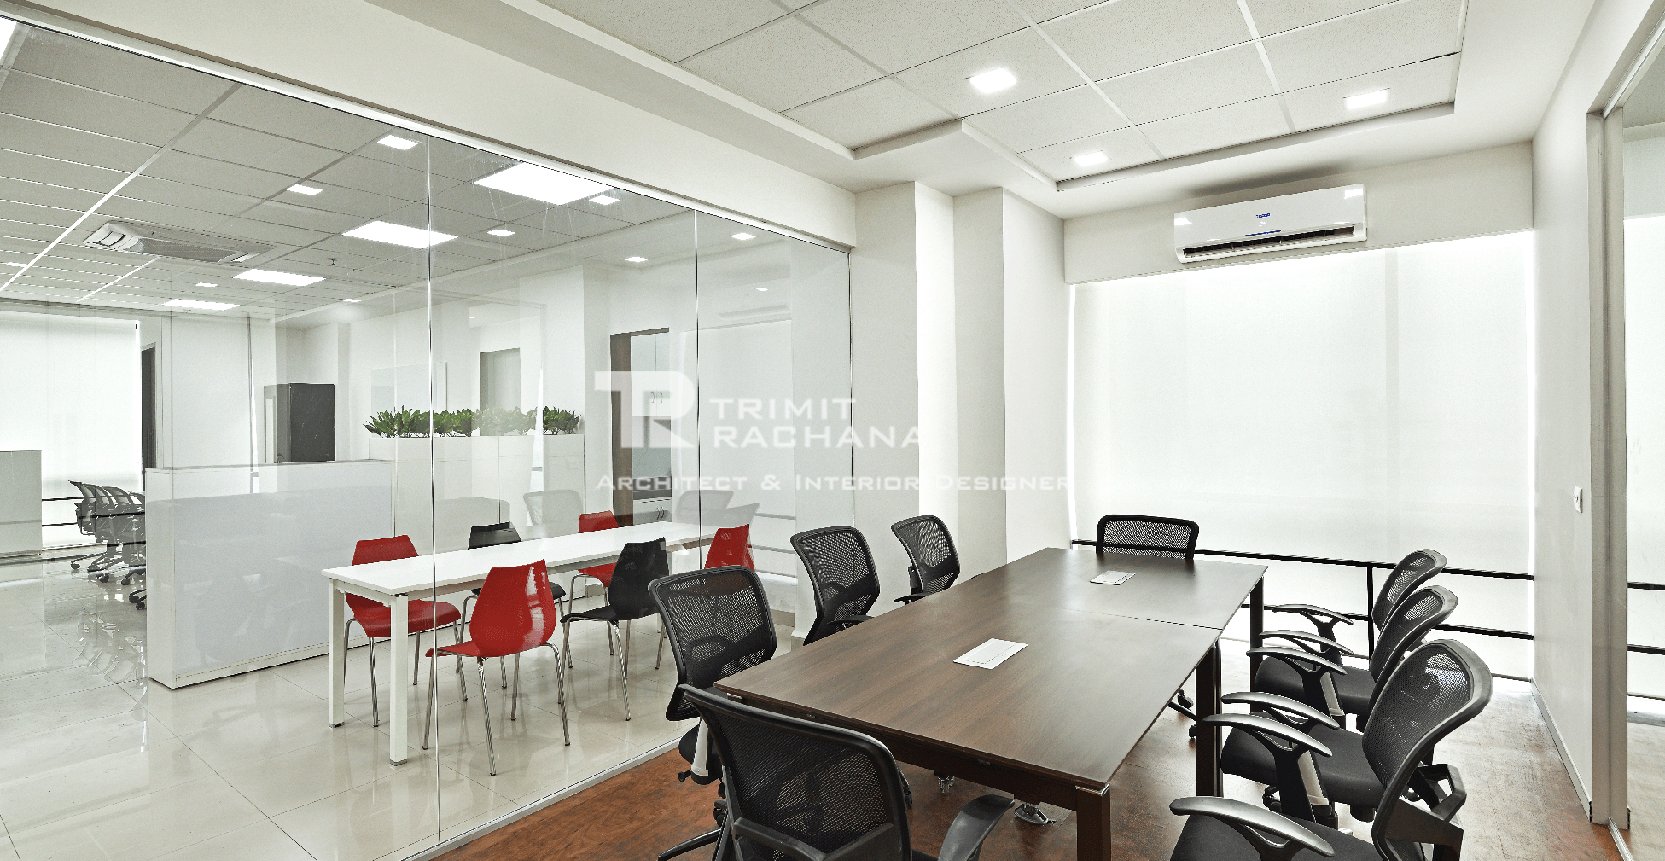 Bridgestone's corporate office Conference Room designed by Trimit Rachana